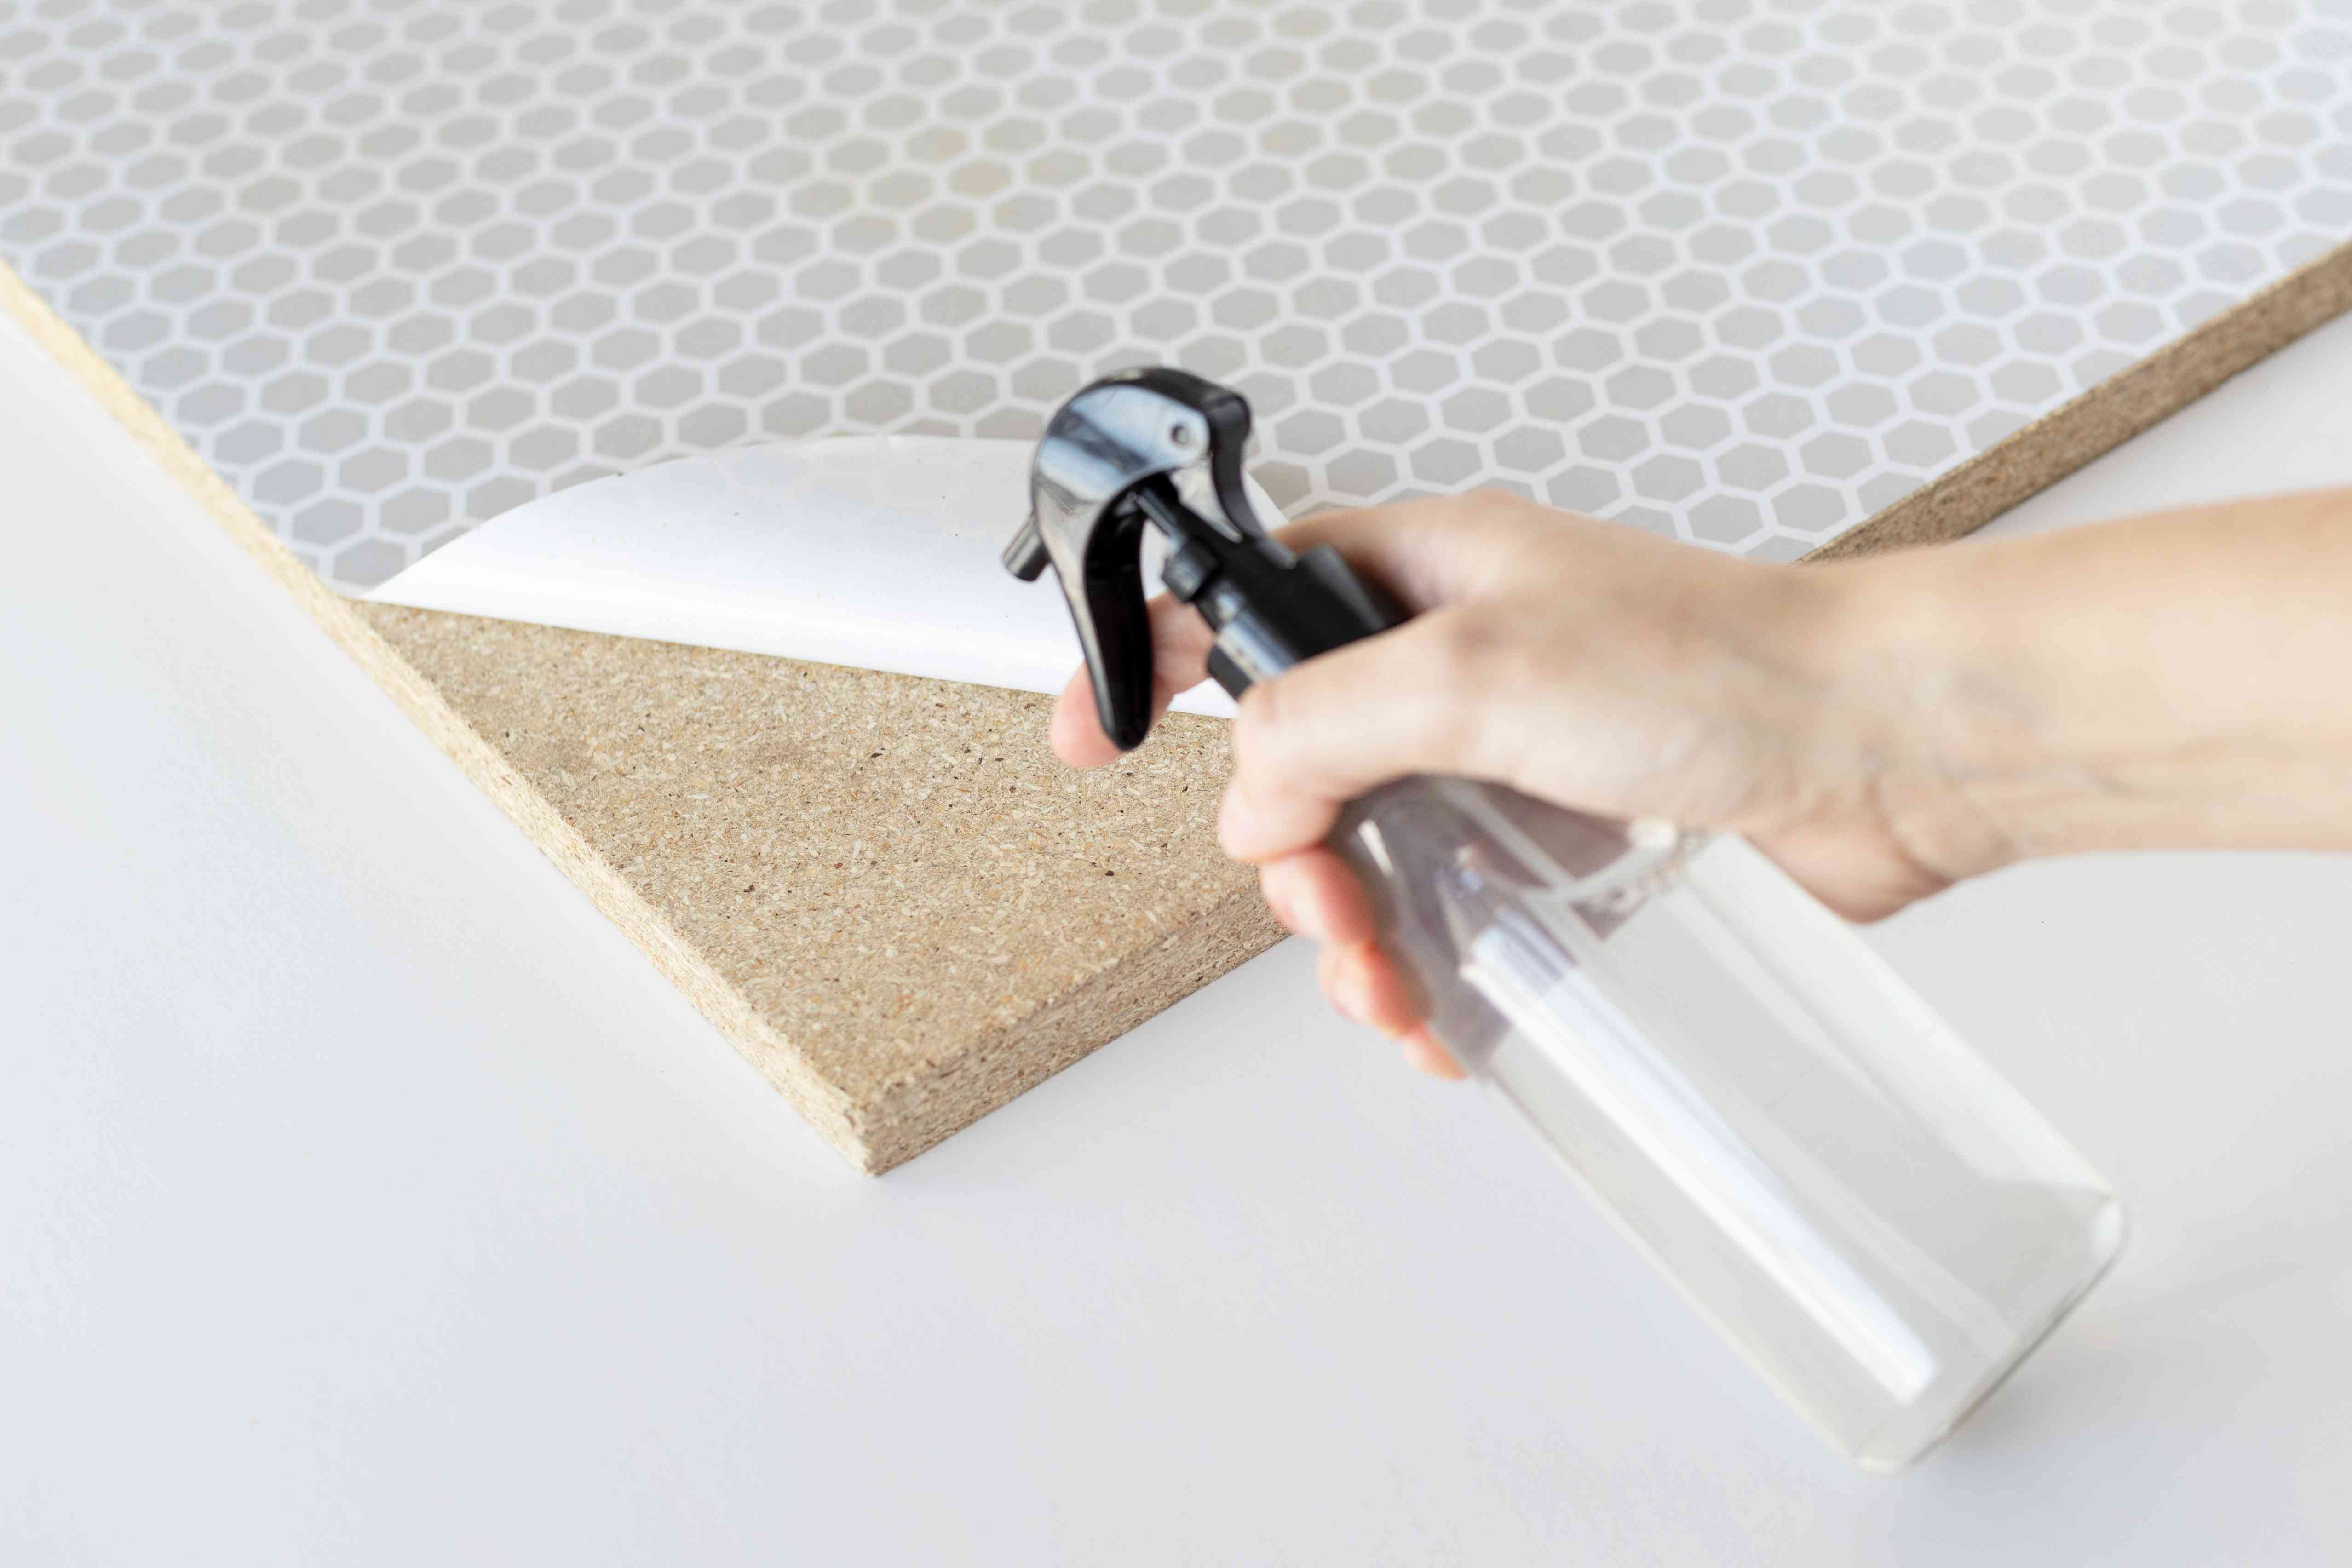 spraying the adhesive side of the shelf liner